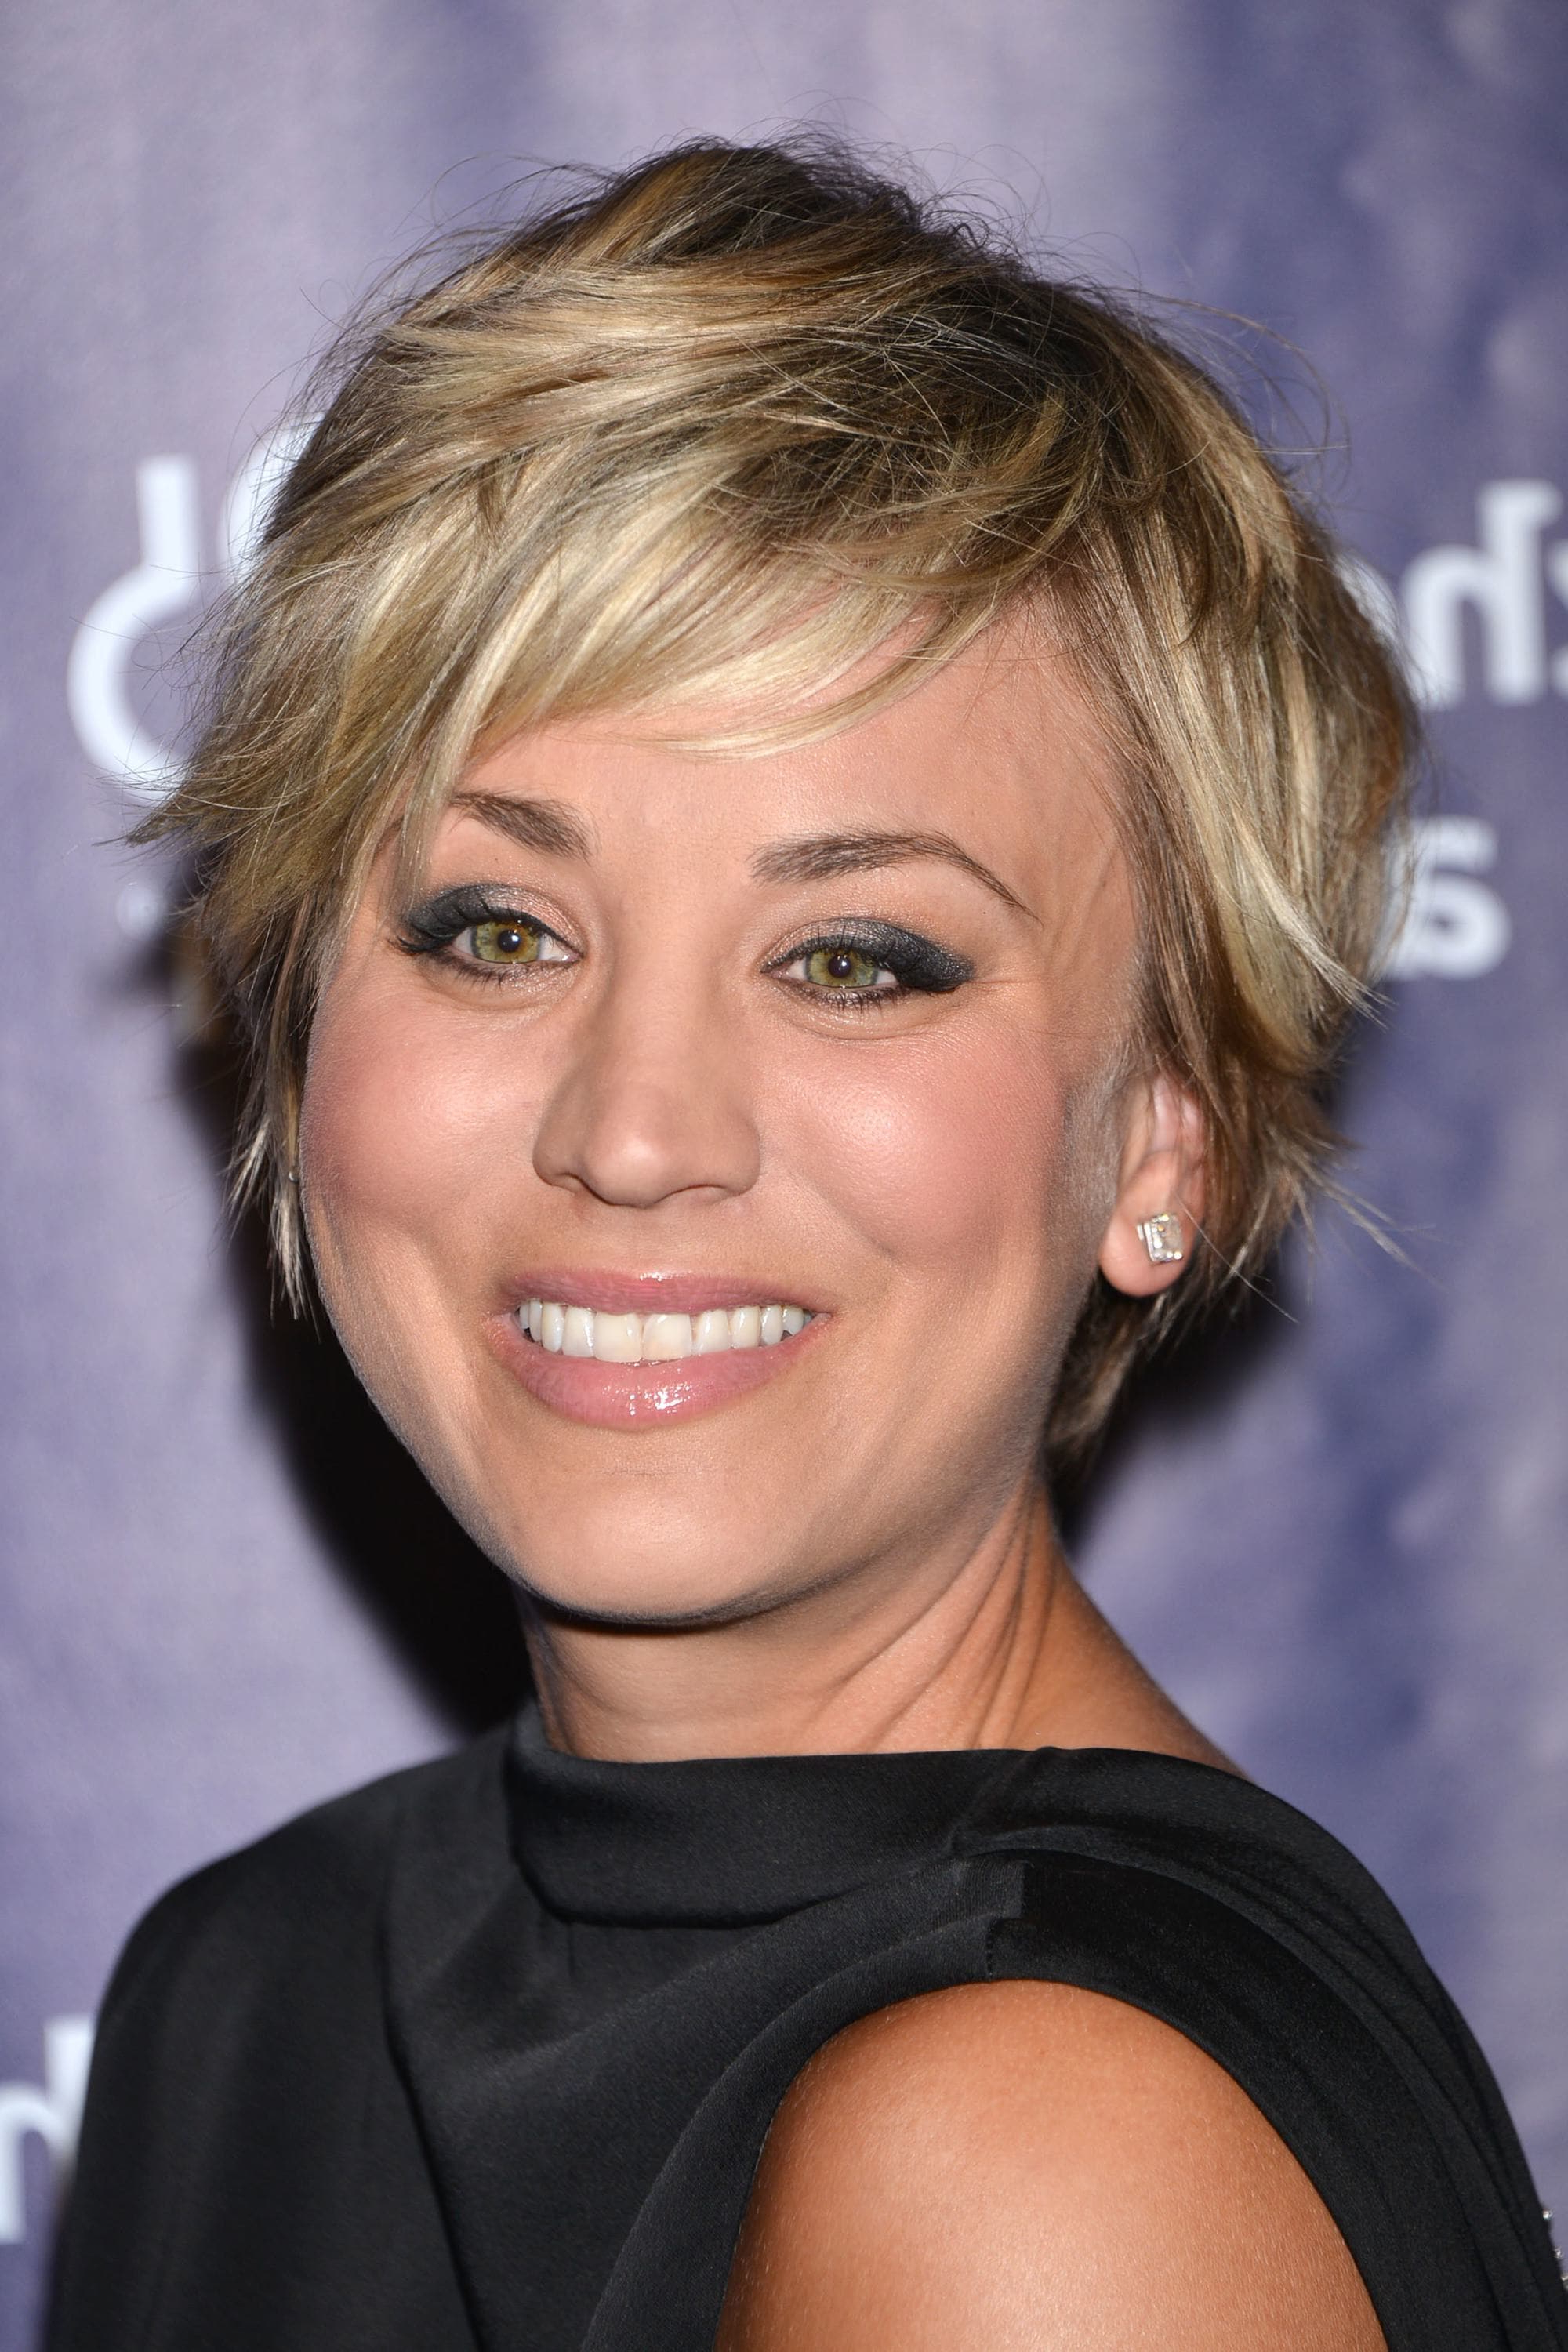 30 Pretty Pixie Cuts Styles Adoreda List Celebrities | All Throughout Long Disheveled Pixie Haircuts With Balayage Highlights (View 18 of 20)